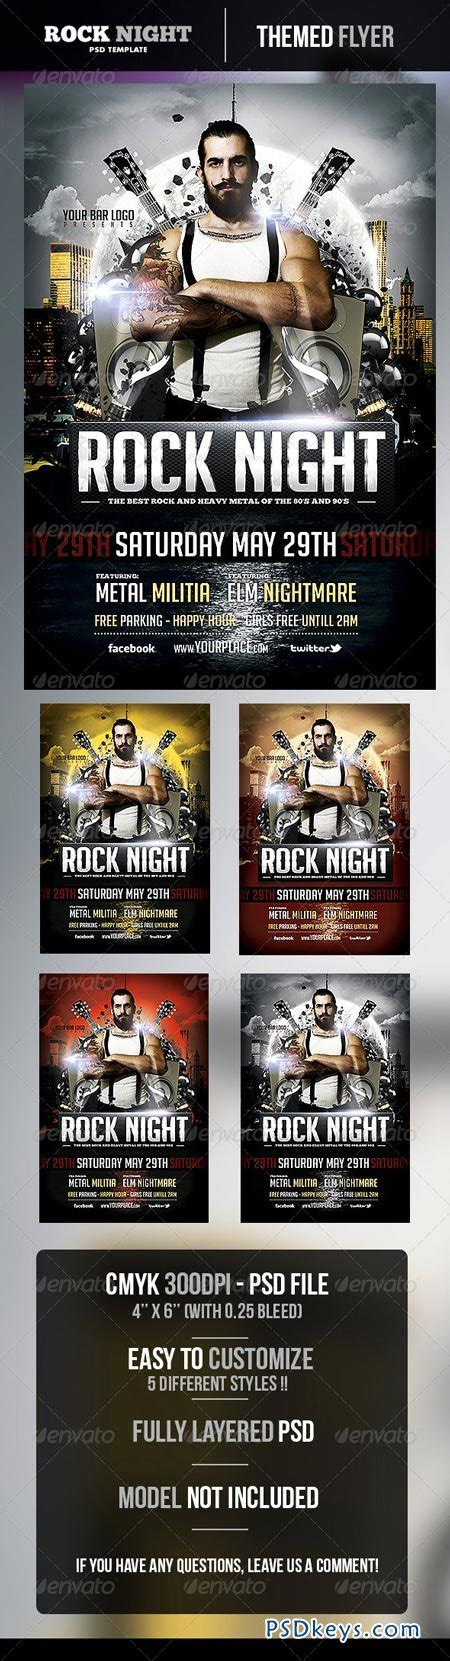 Rock Night Flyer Template 4912675 187 Free Download Photoshop Vector Stock Image Via Torrent Flyer Template Rar